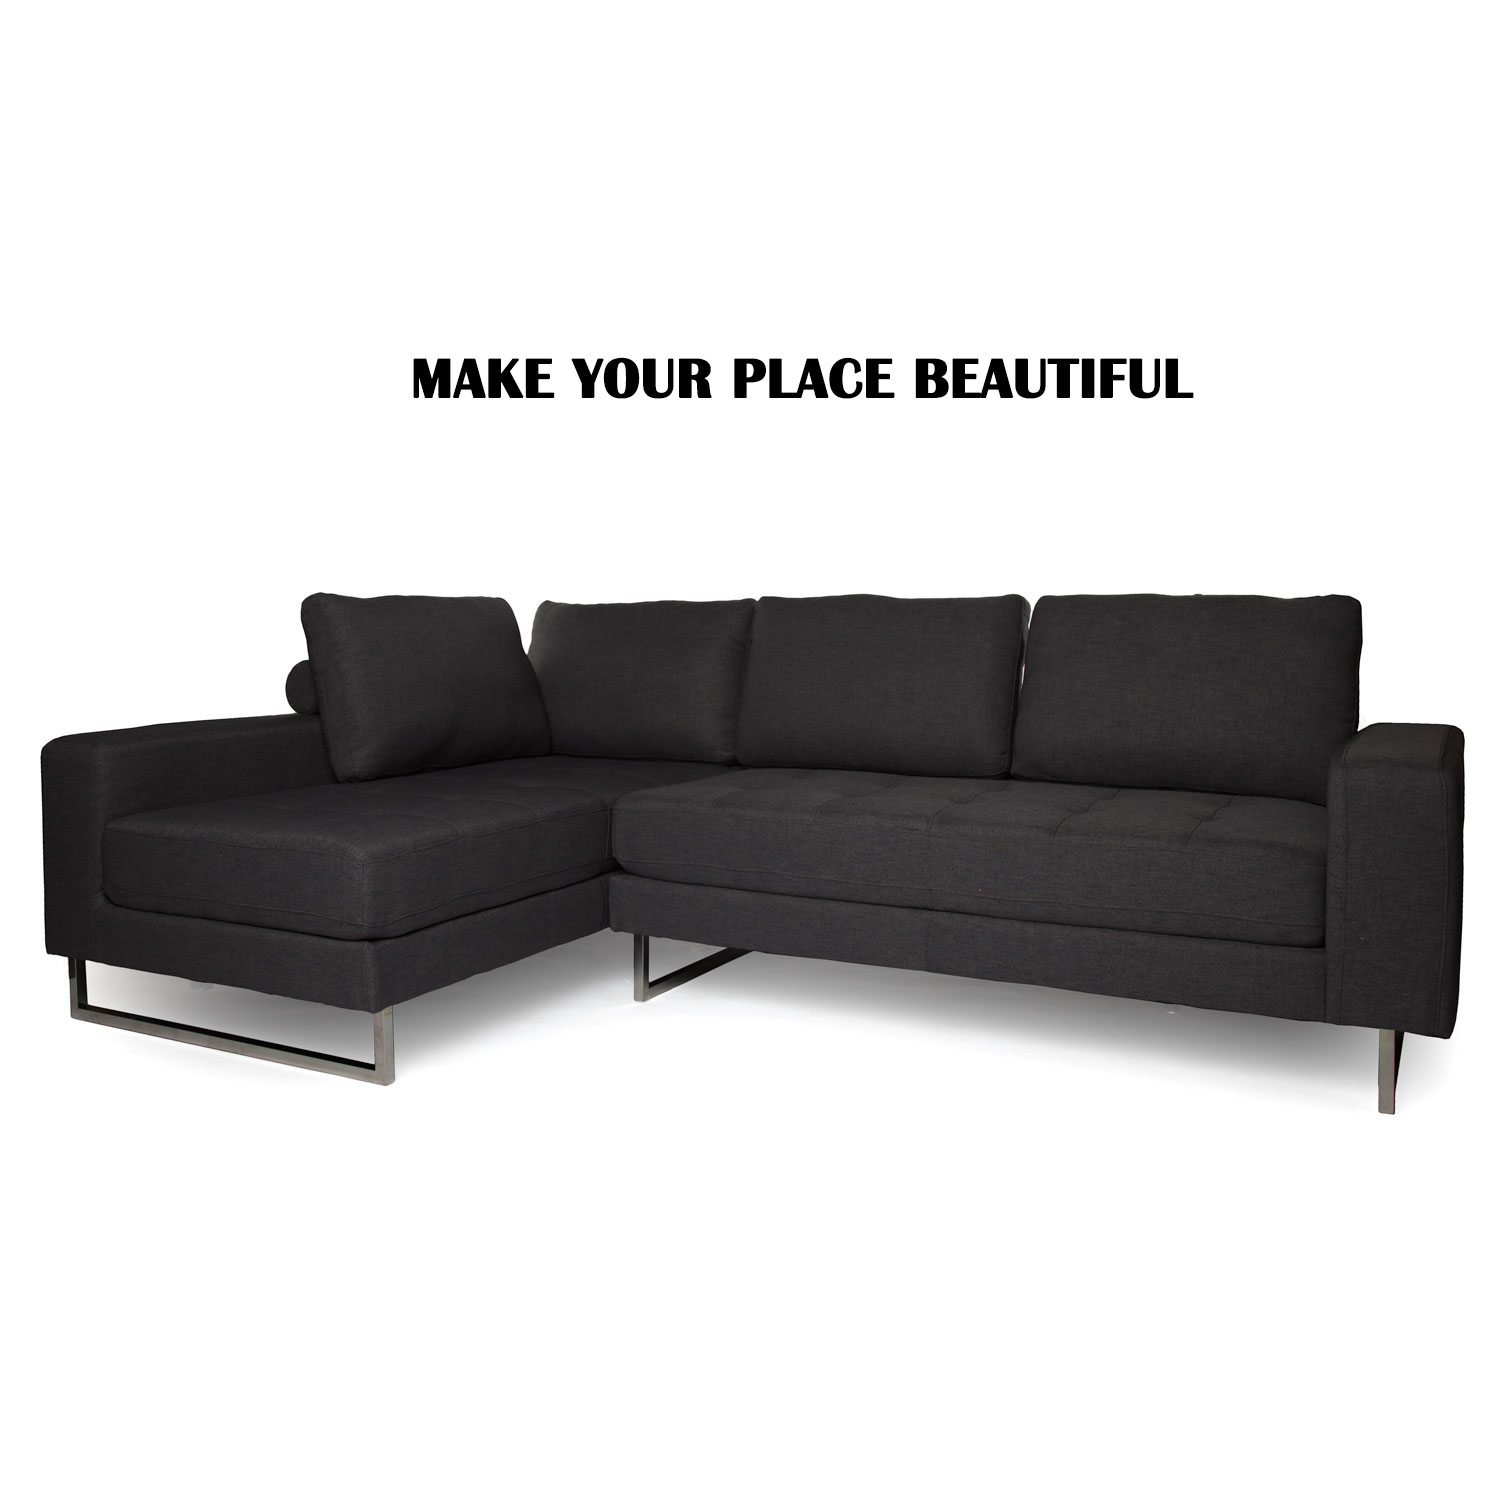 Buying the best set of sofa adds beauty to your room